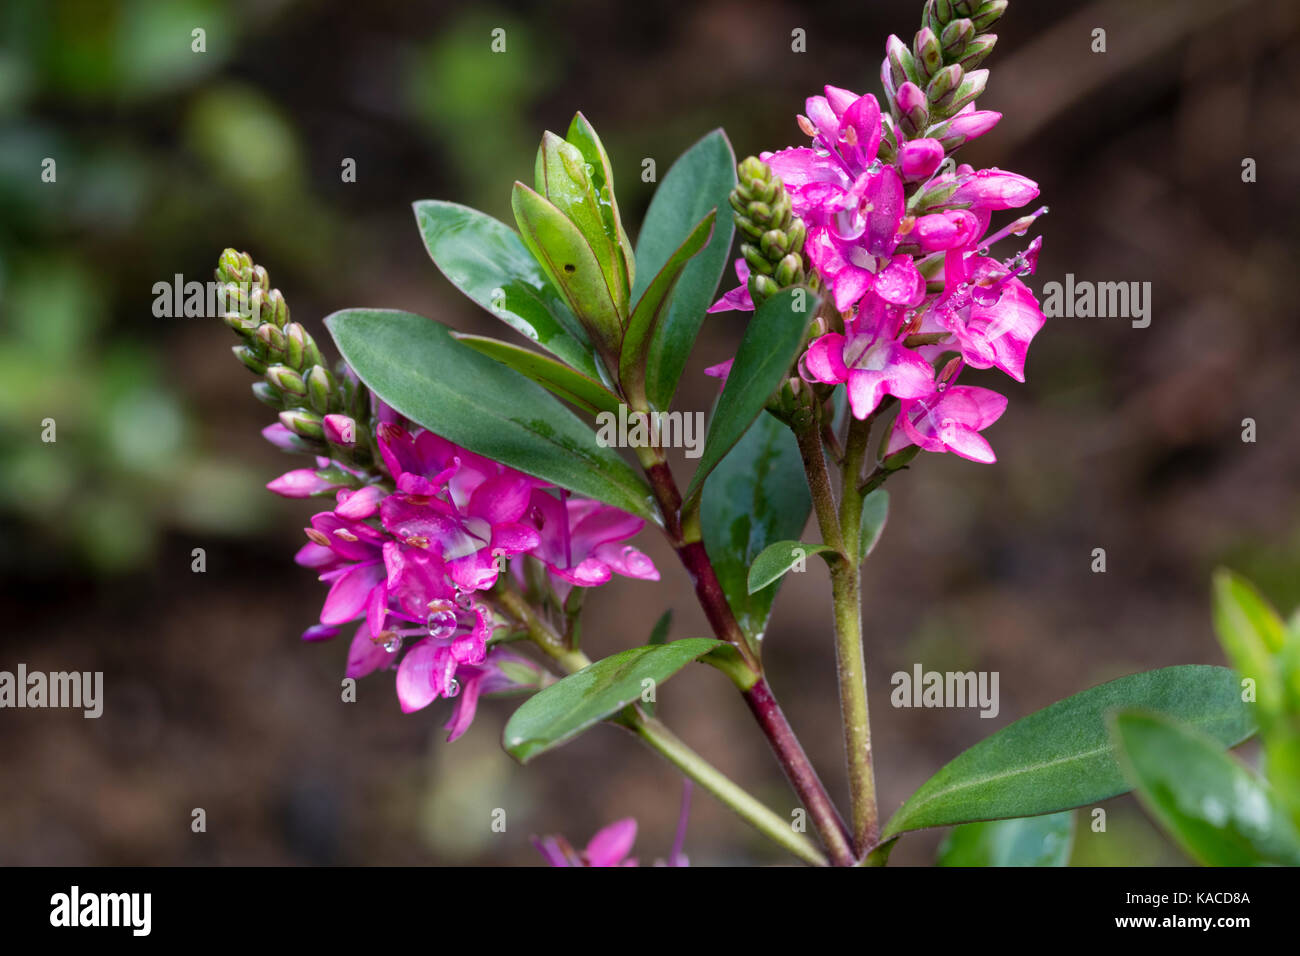 Pink Flowers Of The Small Evergreen Shrub Hebe Pink Paradise